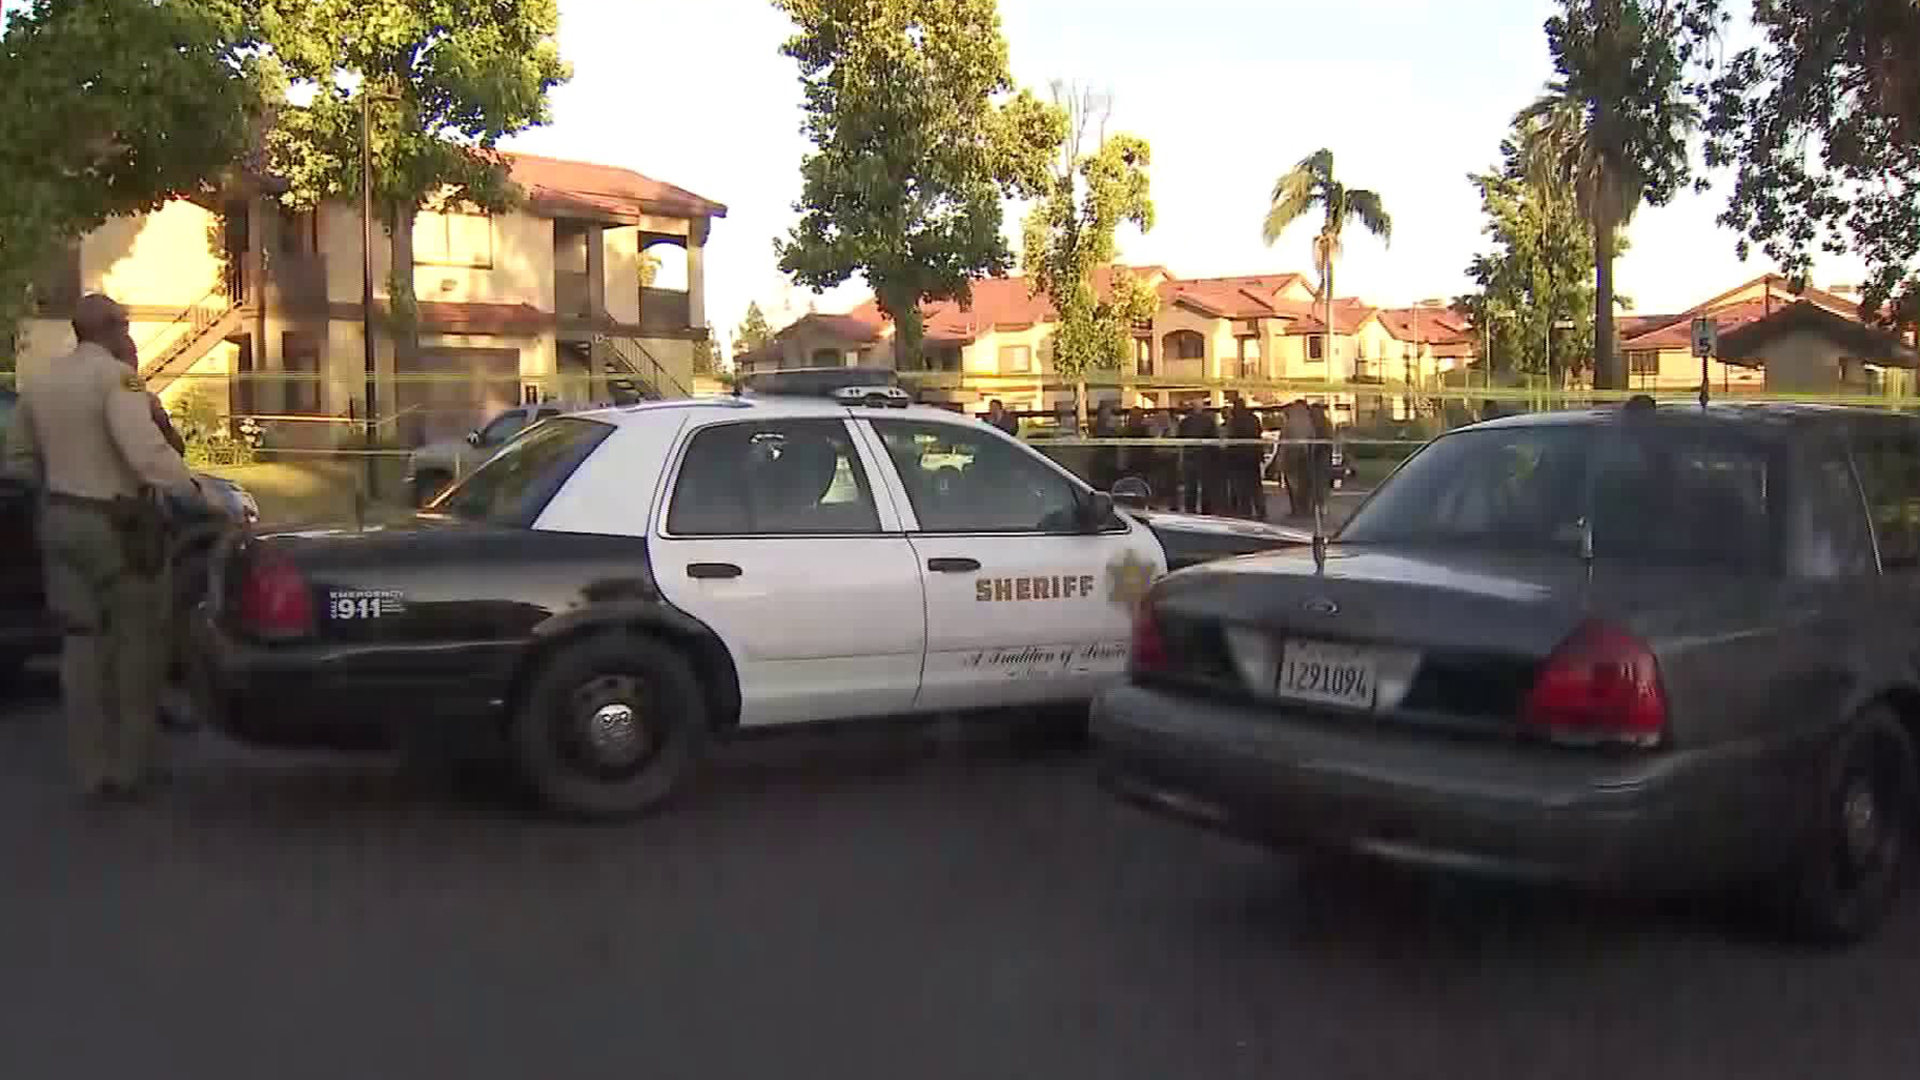 Officials investigate a shooting that left one man dead and another wounded at an apartment complex in the Covina area on July 17, 2019. (Credit: KTLA)